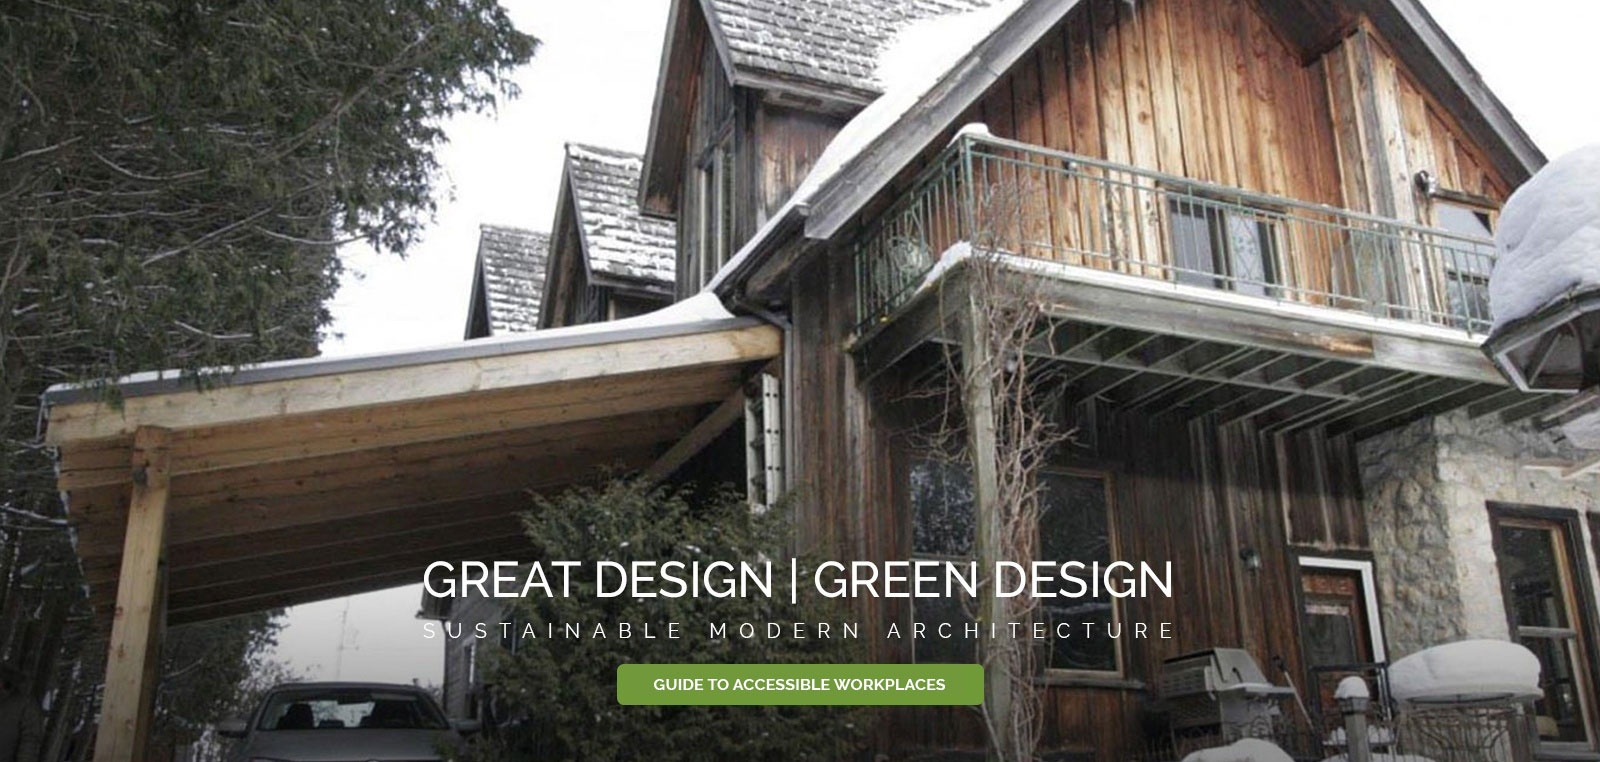 Green Renovation & Design Services in The Greater Toronto Area by The Architect Builders Collaborative Inc.